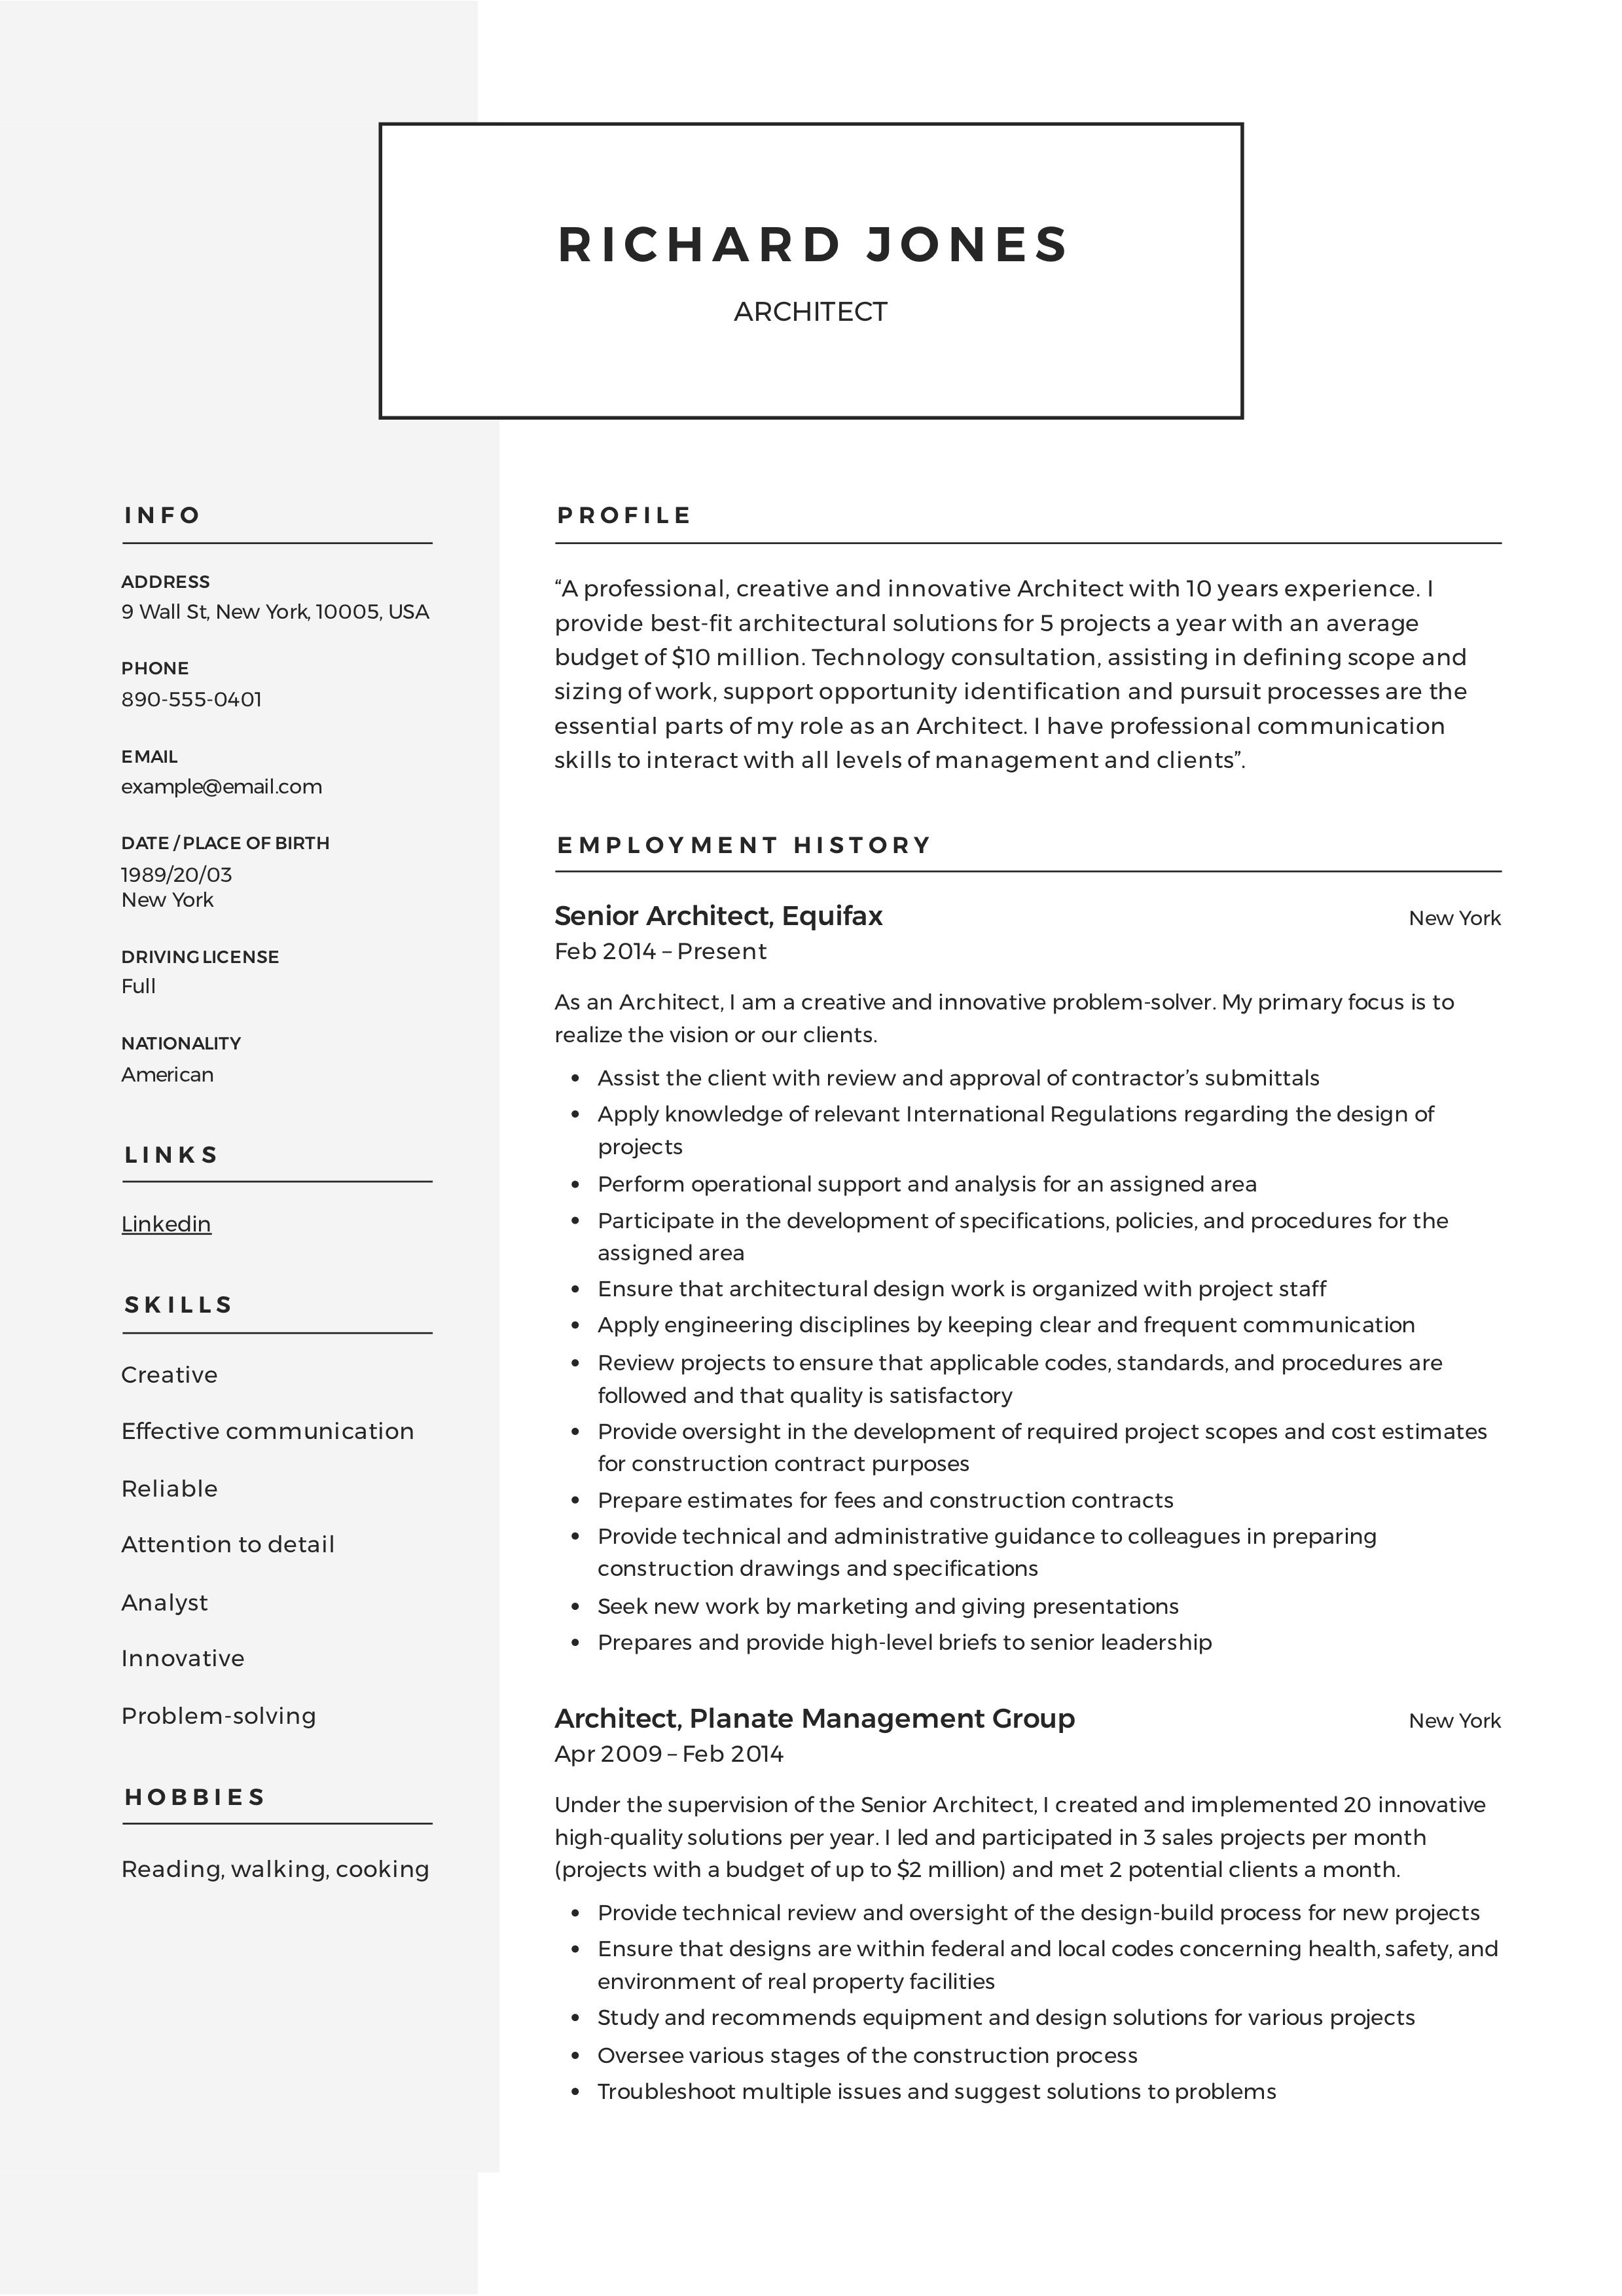 Architect resume writing guide in 2020 architect